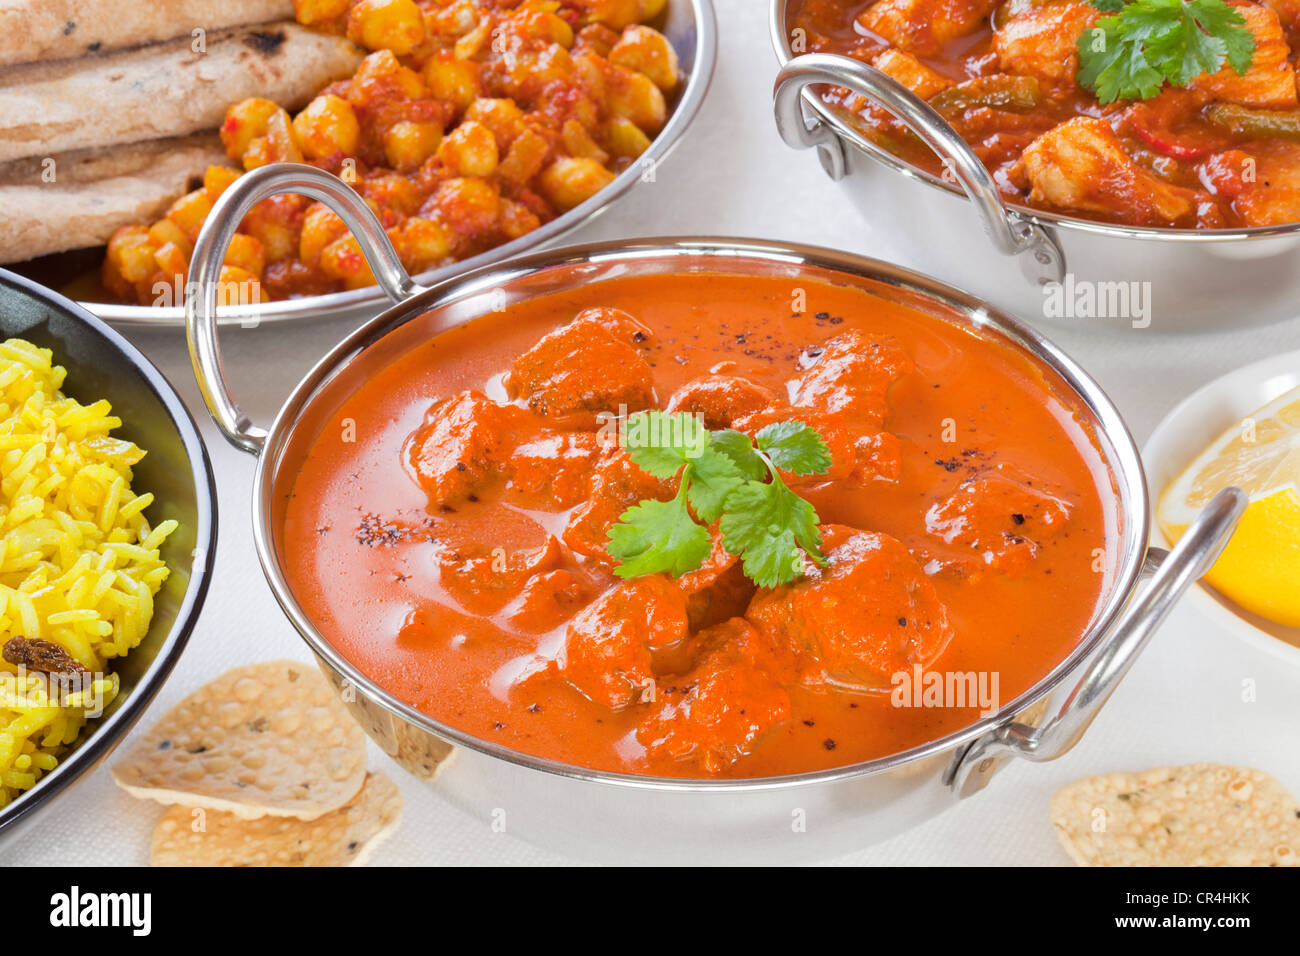 Selection of curry dishes with rogan josh, pillau rice,chana dhal,chicken jalfrezi and poppadums. - Stock Image